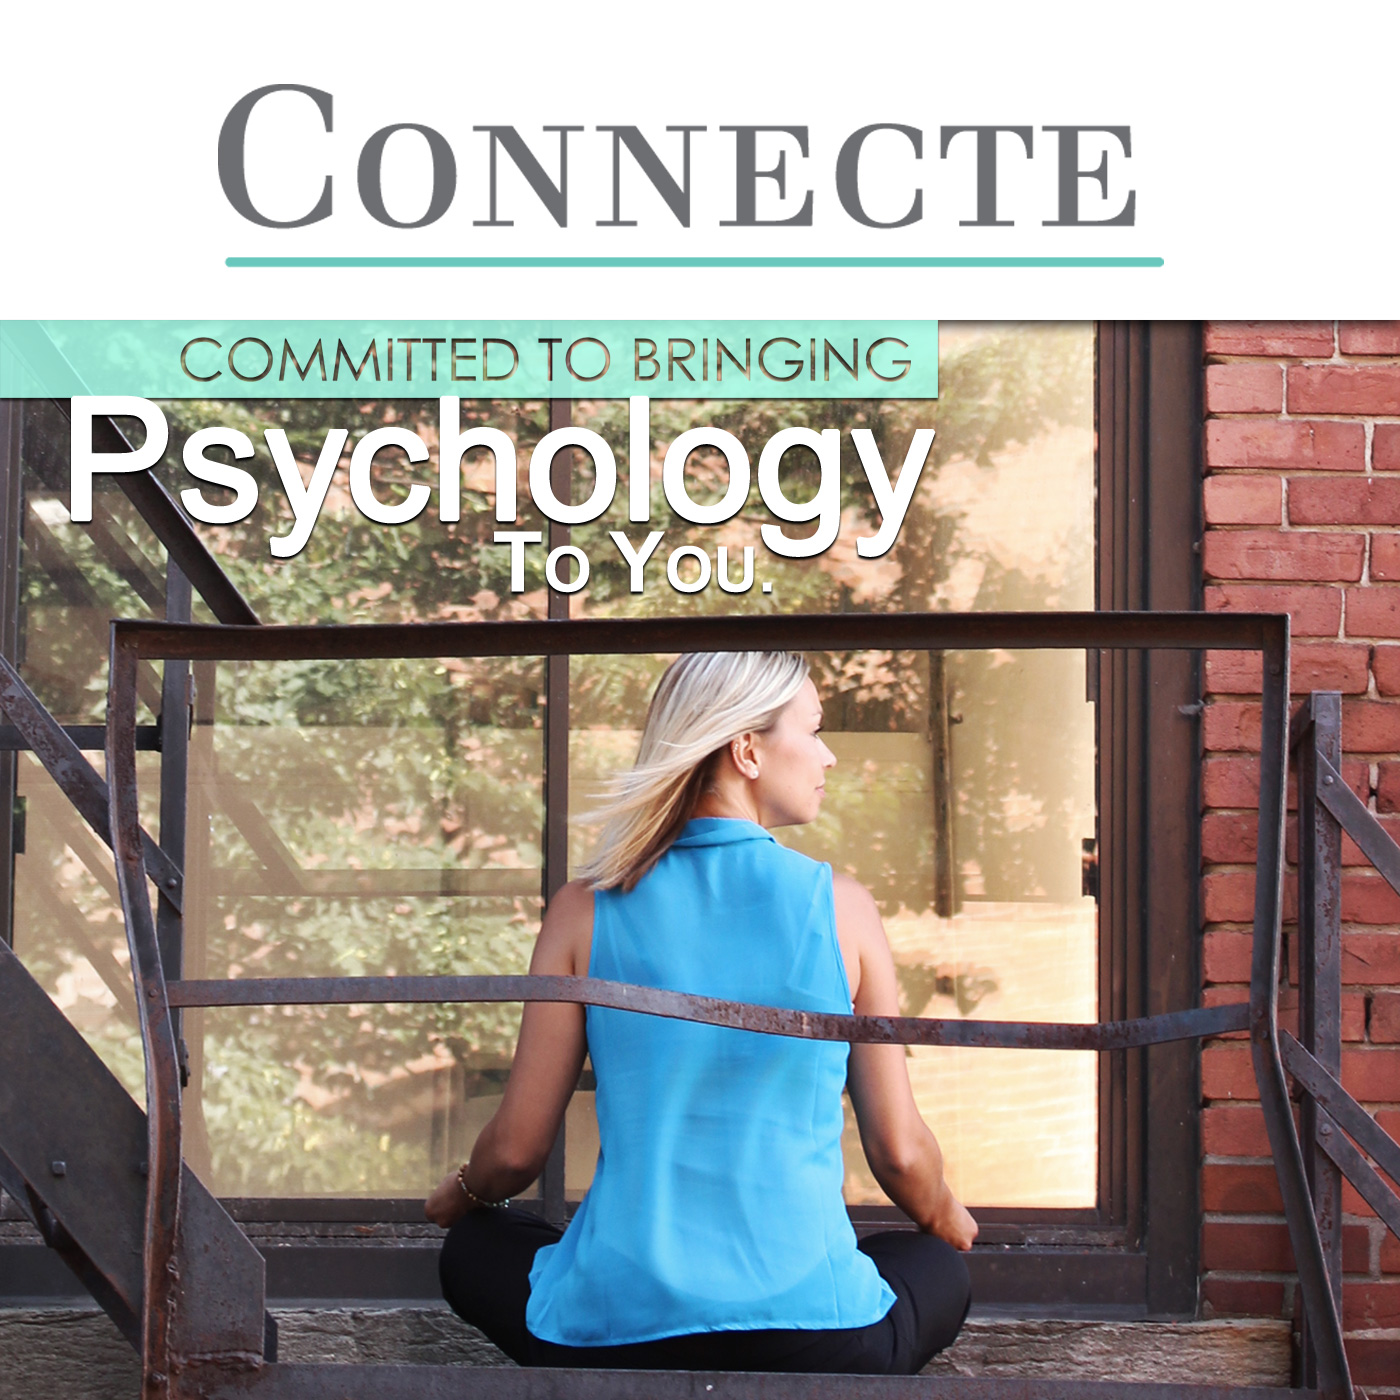 Connecte Psychology Montreal